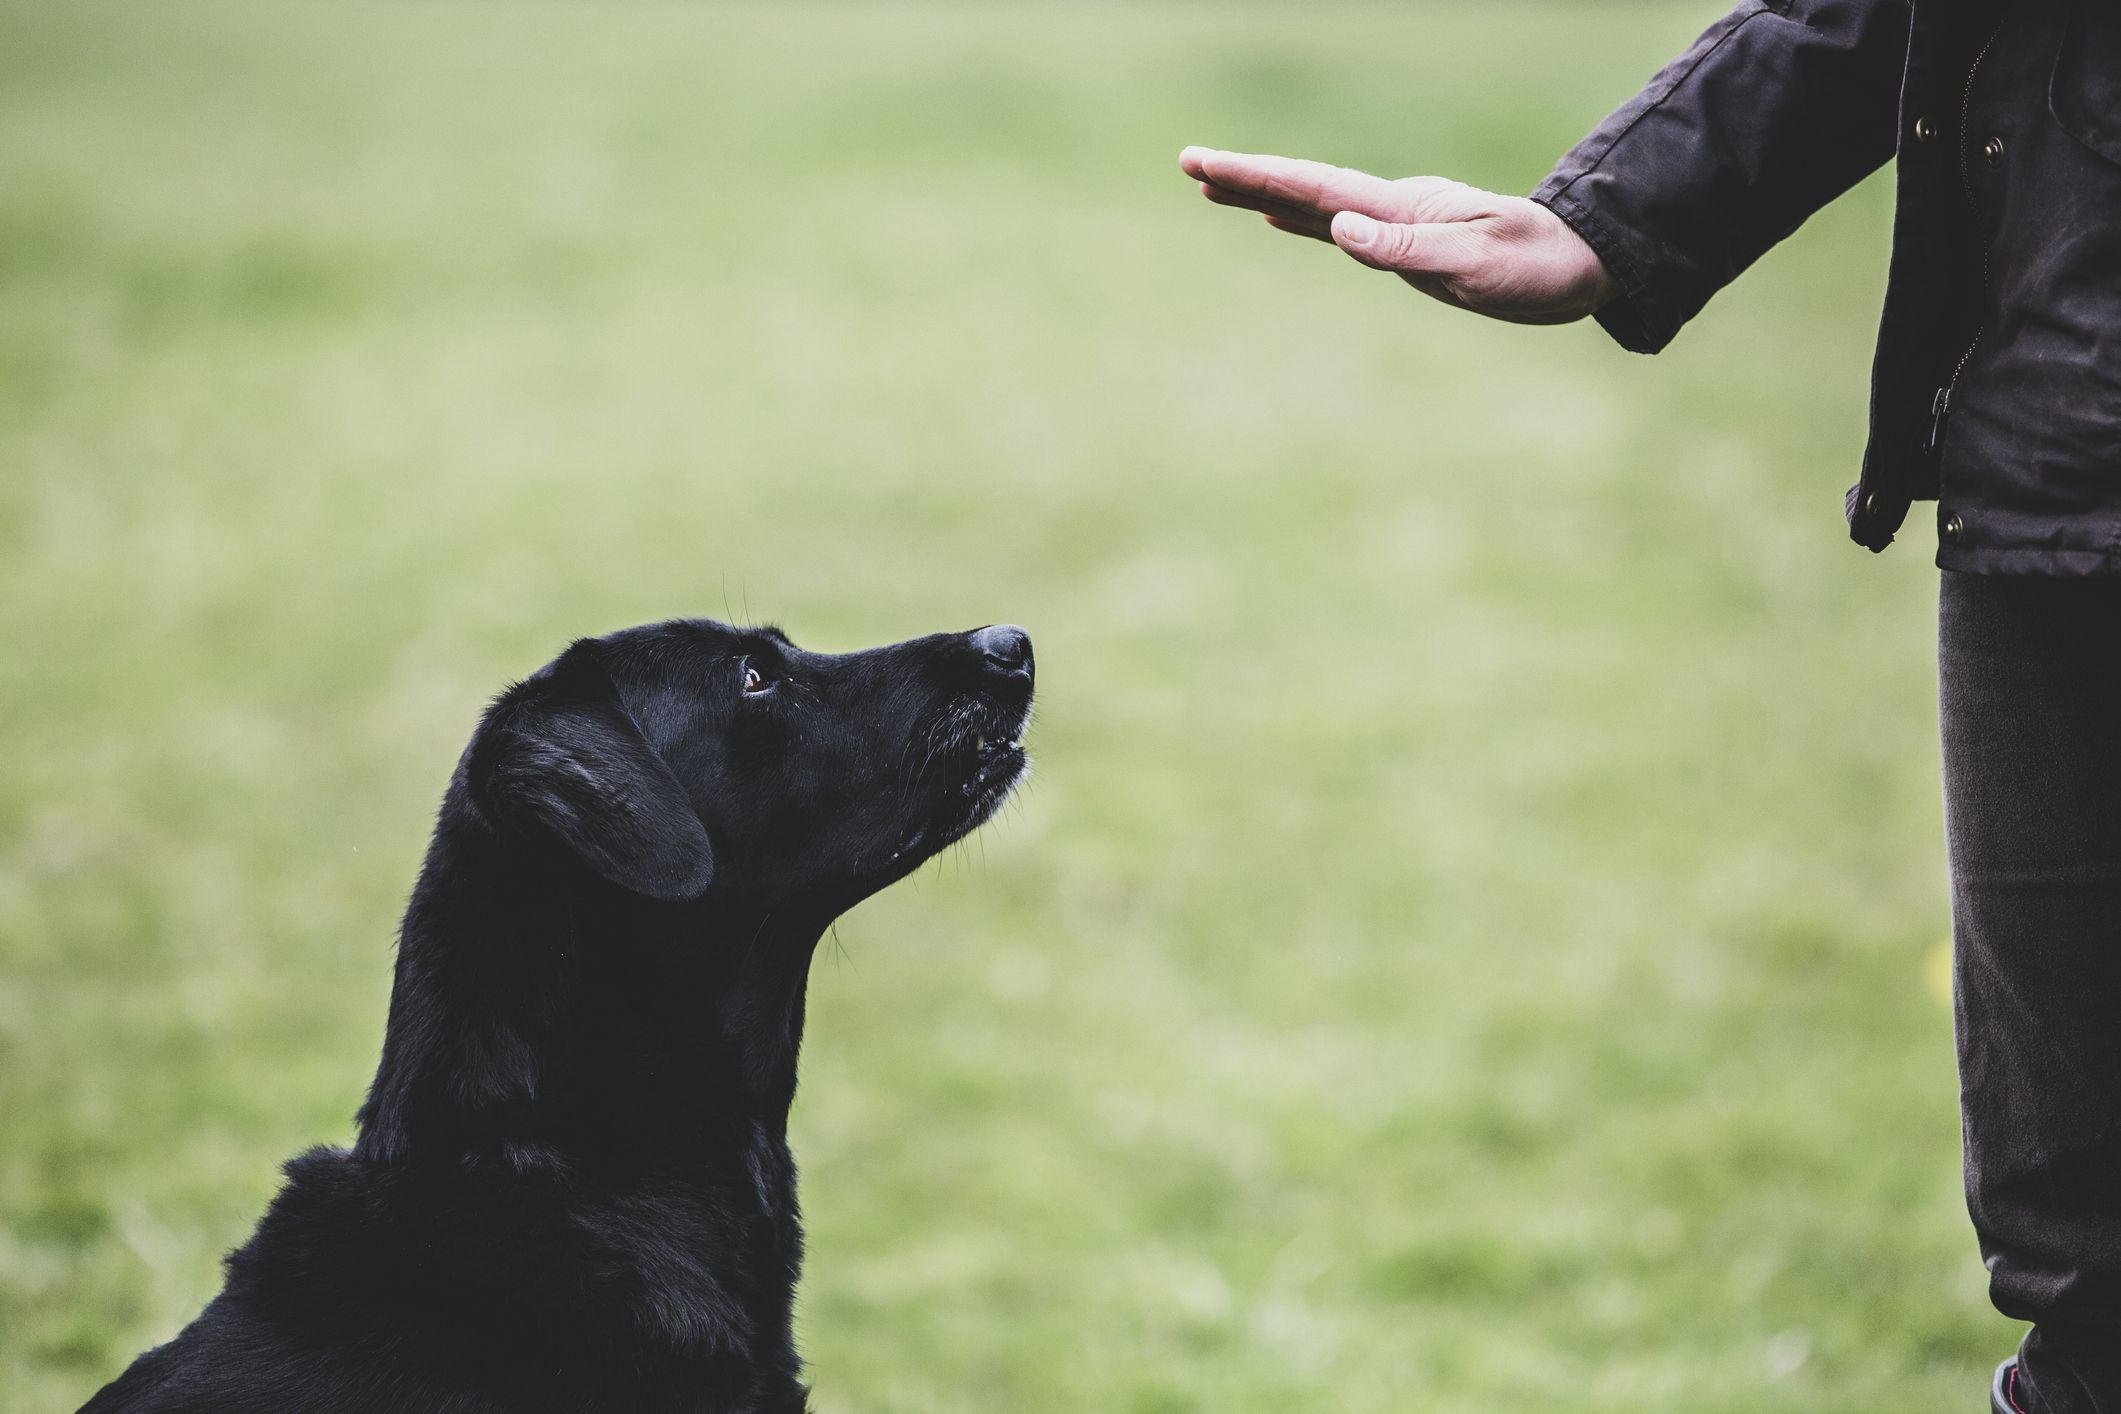 a-dog-trainer-giving-a-hand-command-to-black-labrador-dog–1153579373-cb14c8fb30724468a702c972910c6f2a